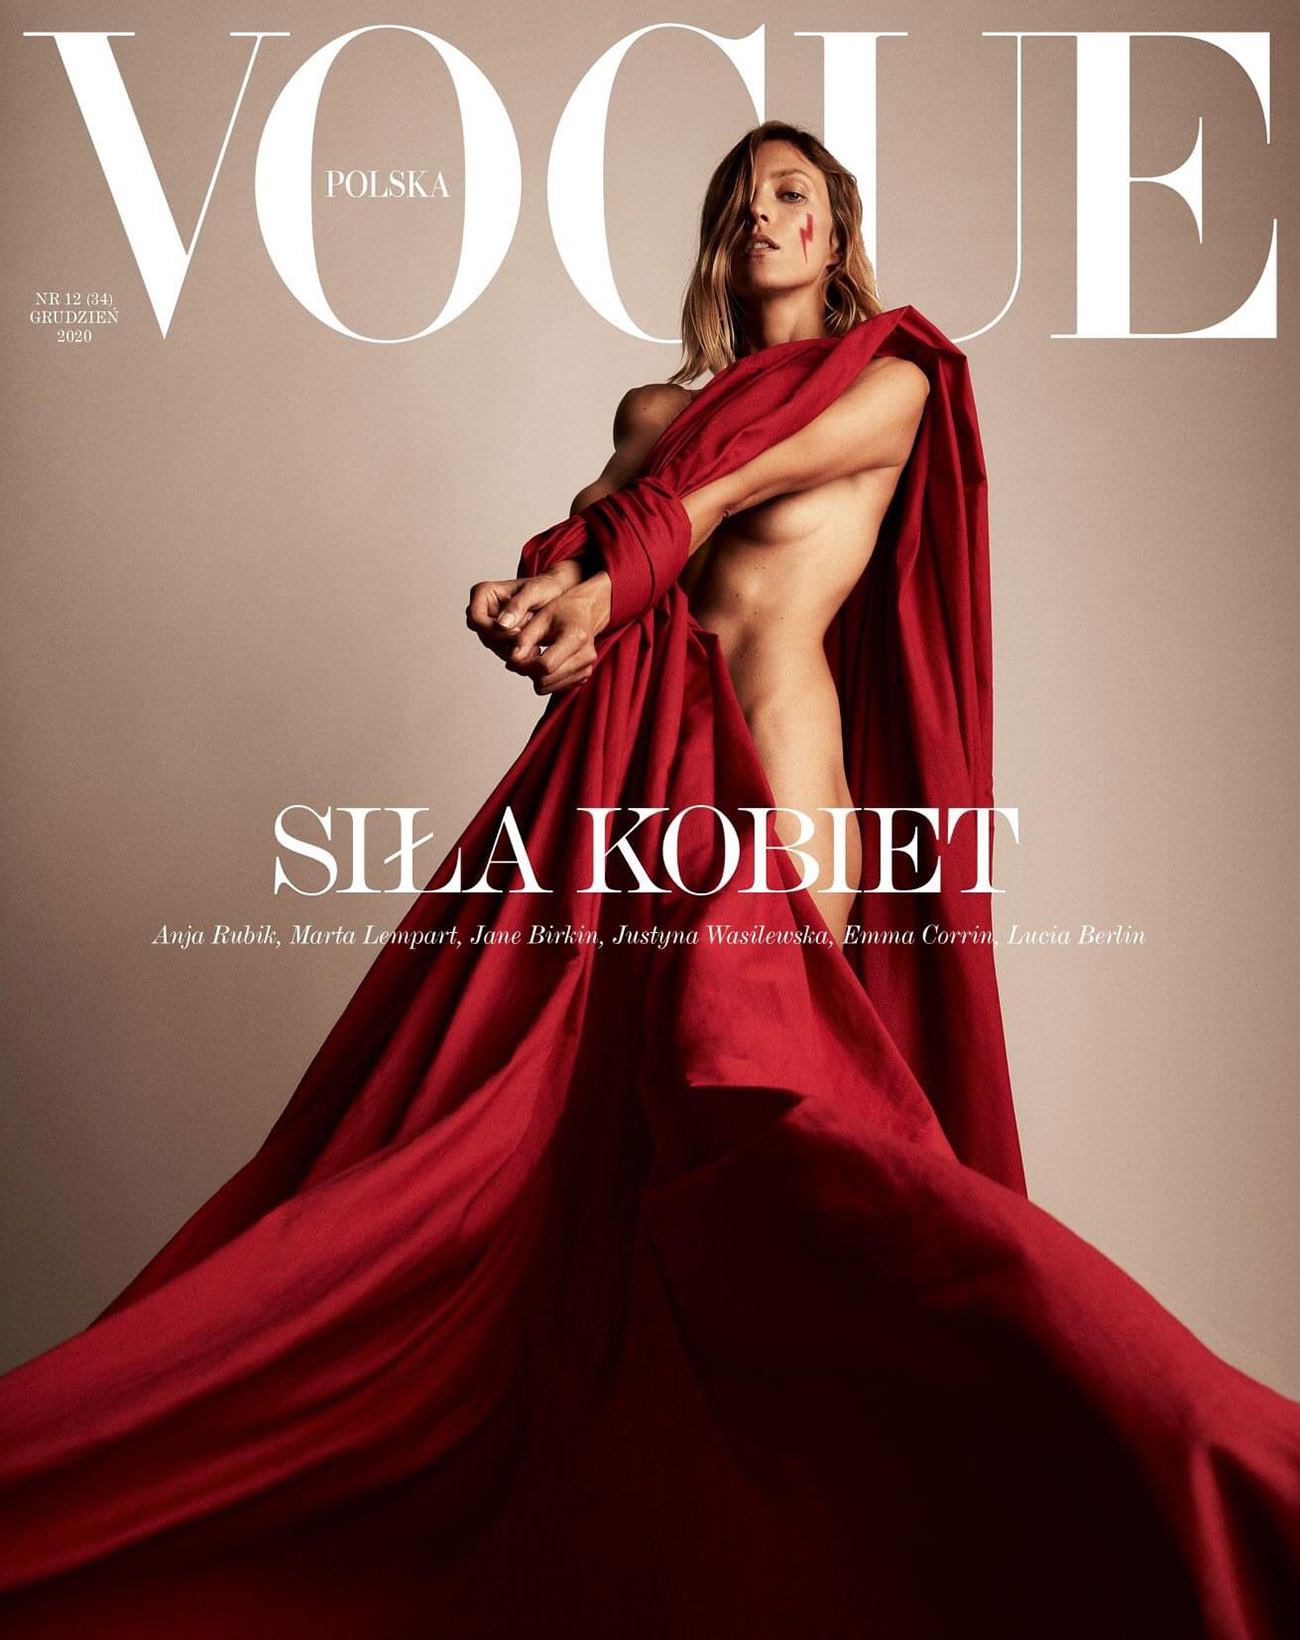 Anja Rubik covers Vogue Poland December 2020 by Anja Rubik